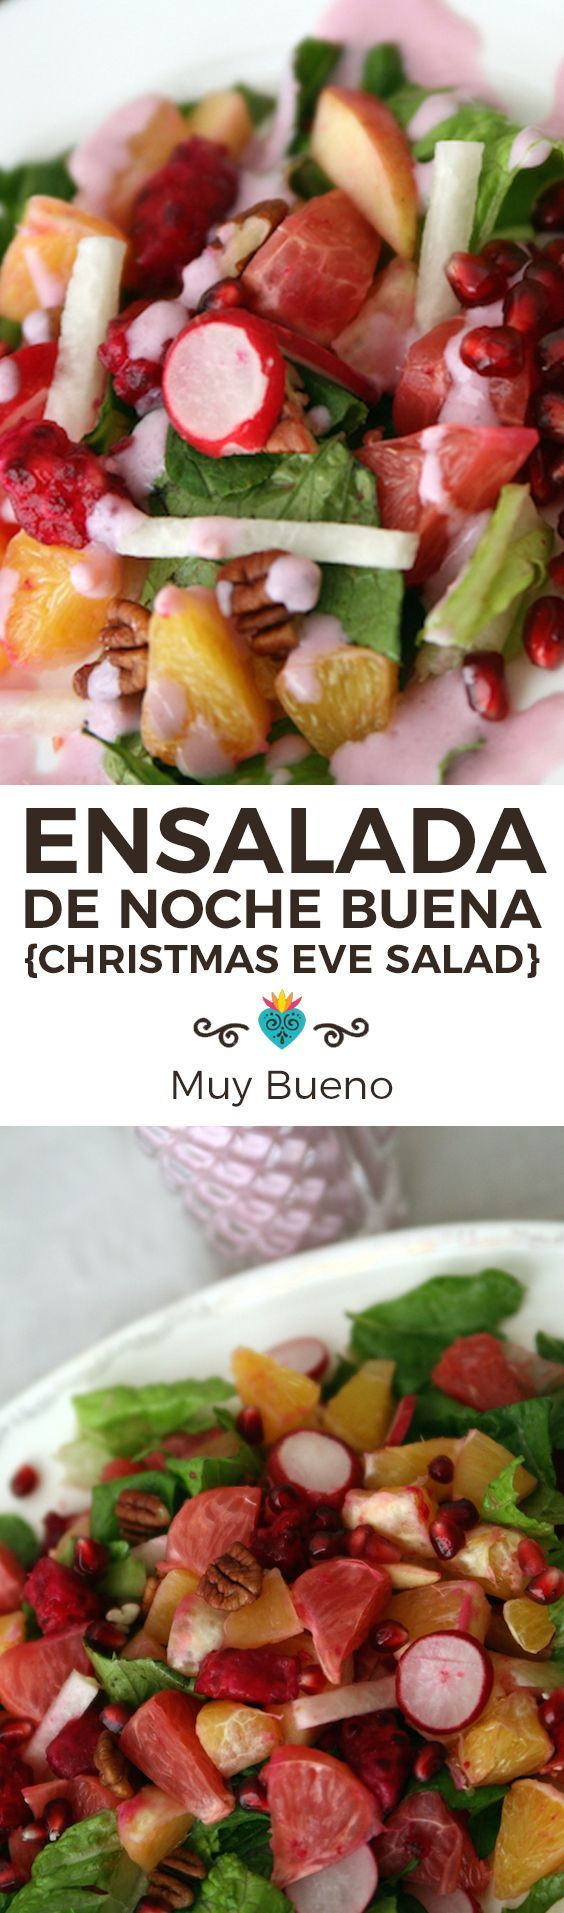 Buena refers to Christmas Eve in Mexico. Traditionally families have a big meal at midnight and Ensalada de Noche Buena is one of the healthy side dishes served. Most recipes use beets but we decided to go with the other juicy red fruits, pomegranates and prickly pears. The light and creamy salad dressing adds a war